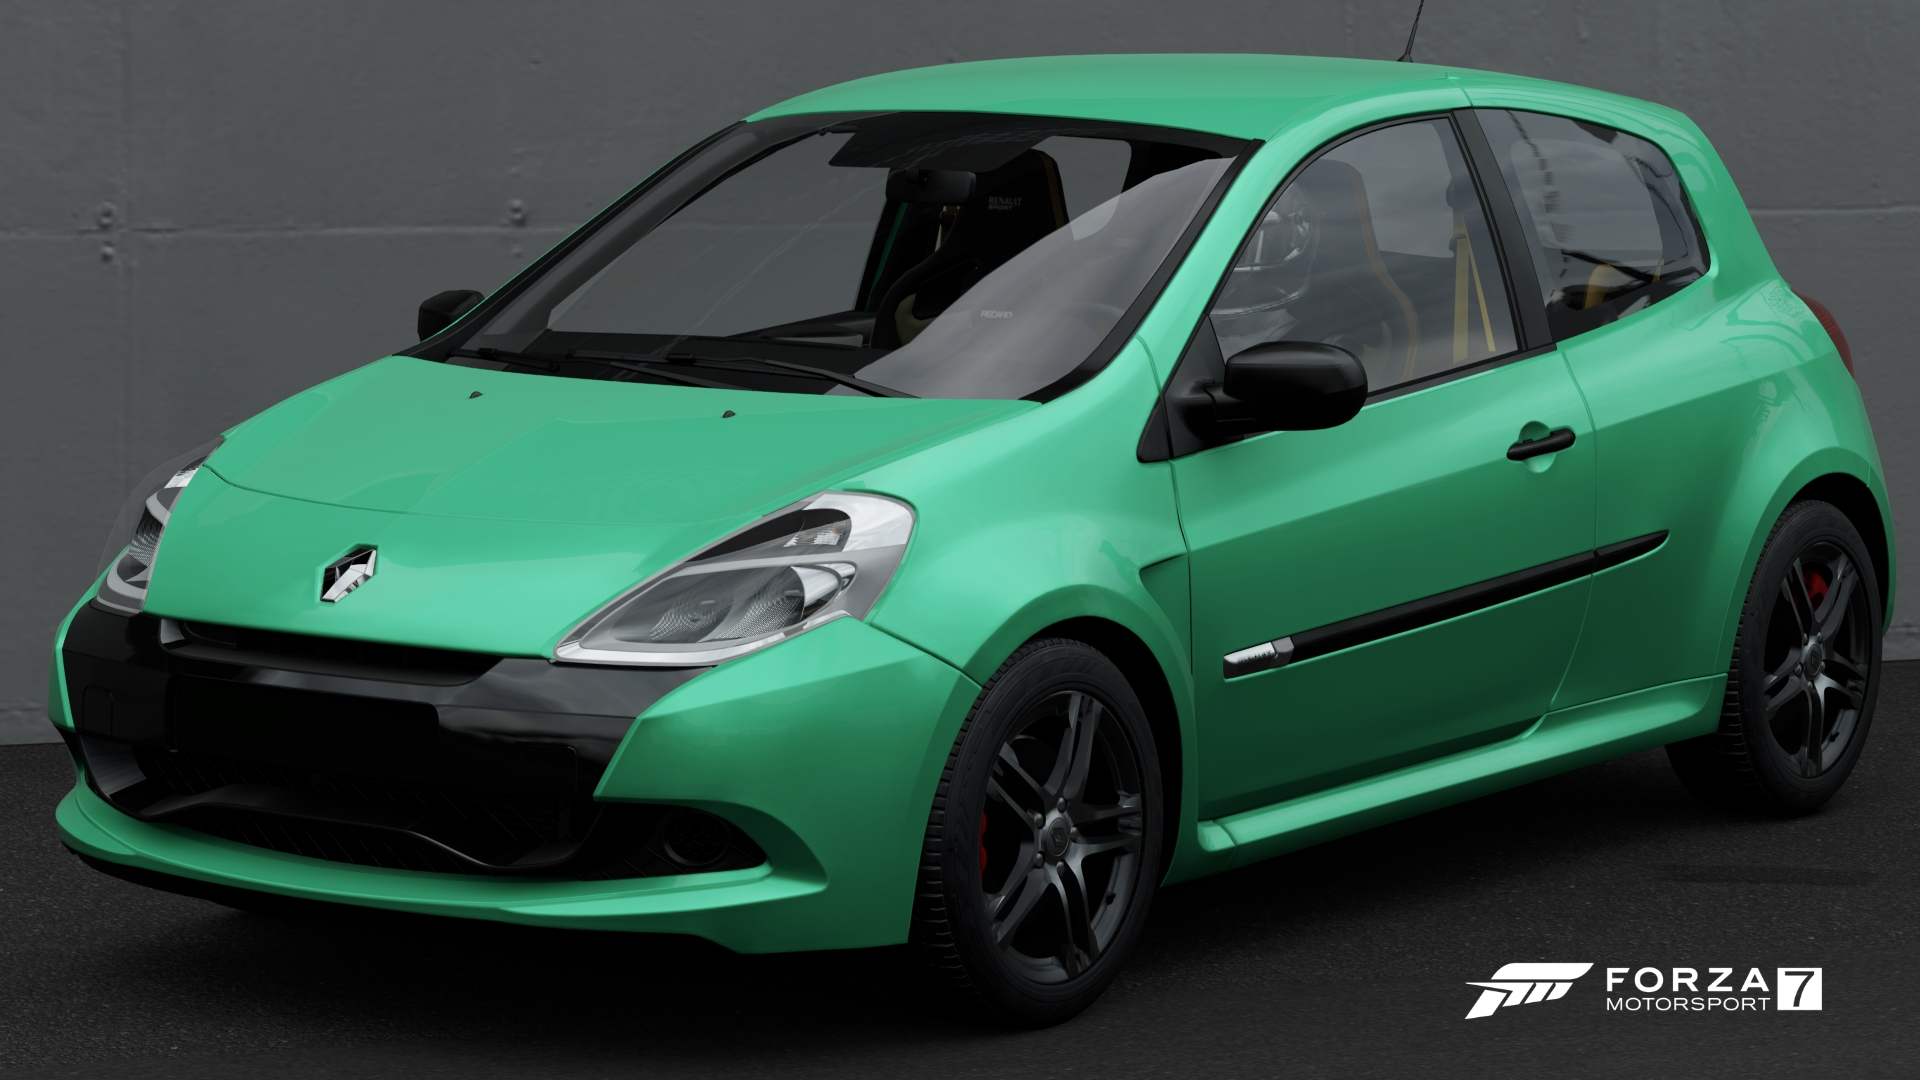 renault clio rs forza motorsport wiki fandom powered by wikia. Black Bedroom Furniture Sets. Home Design Ideas